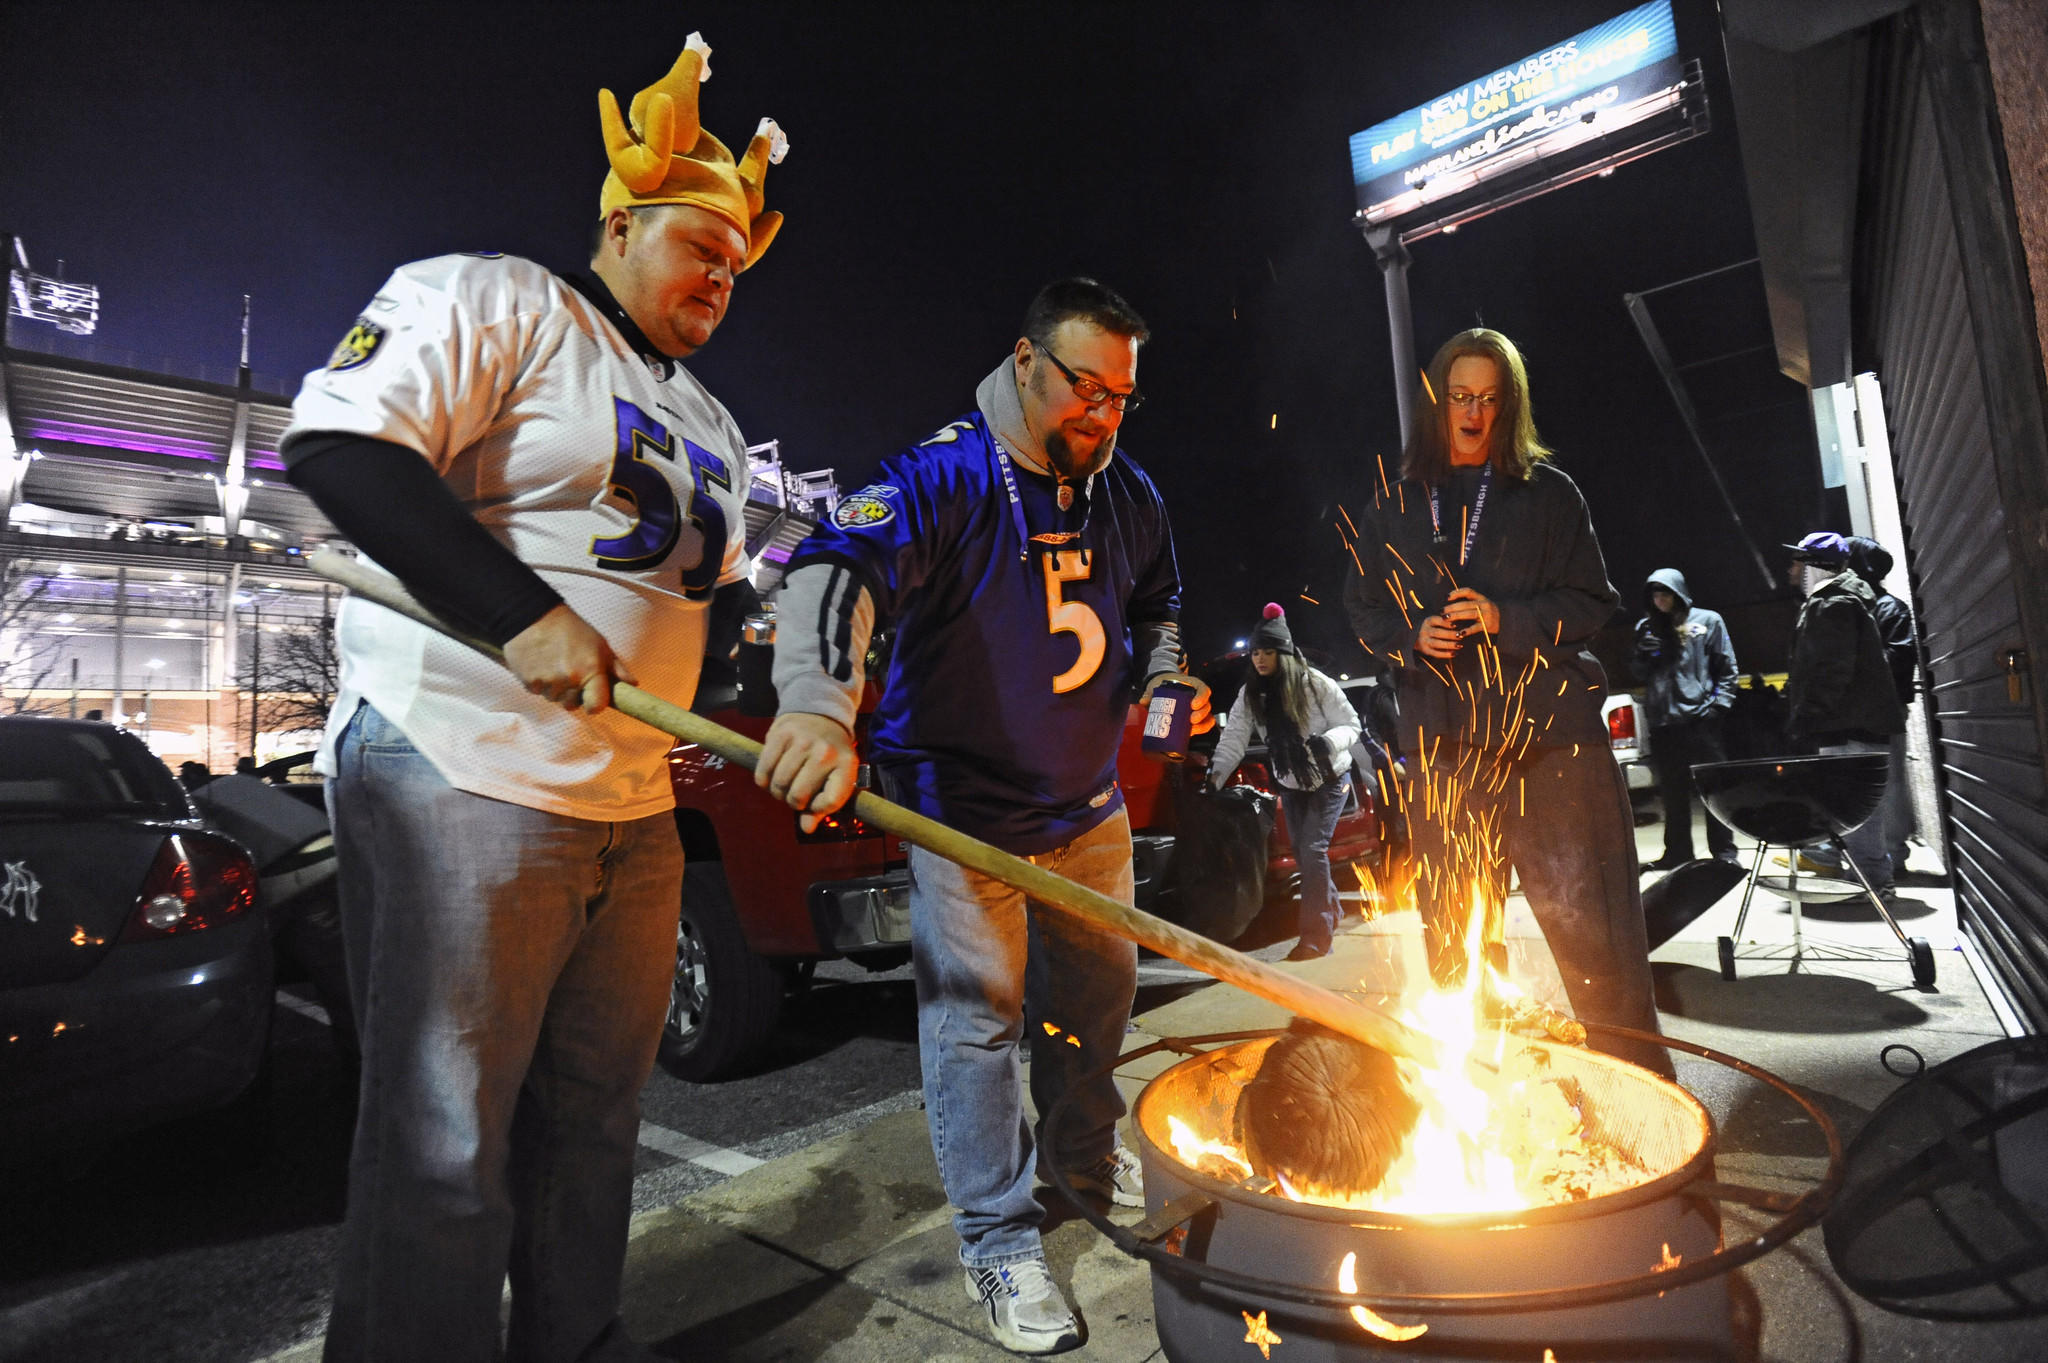 Ravens fans won't have to pay more for their tickets in 2014. The team has kept prices at M&T Bank Stadium the same as in 2013.